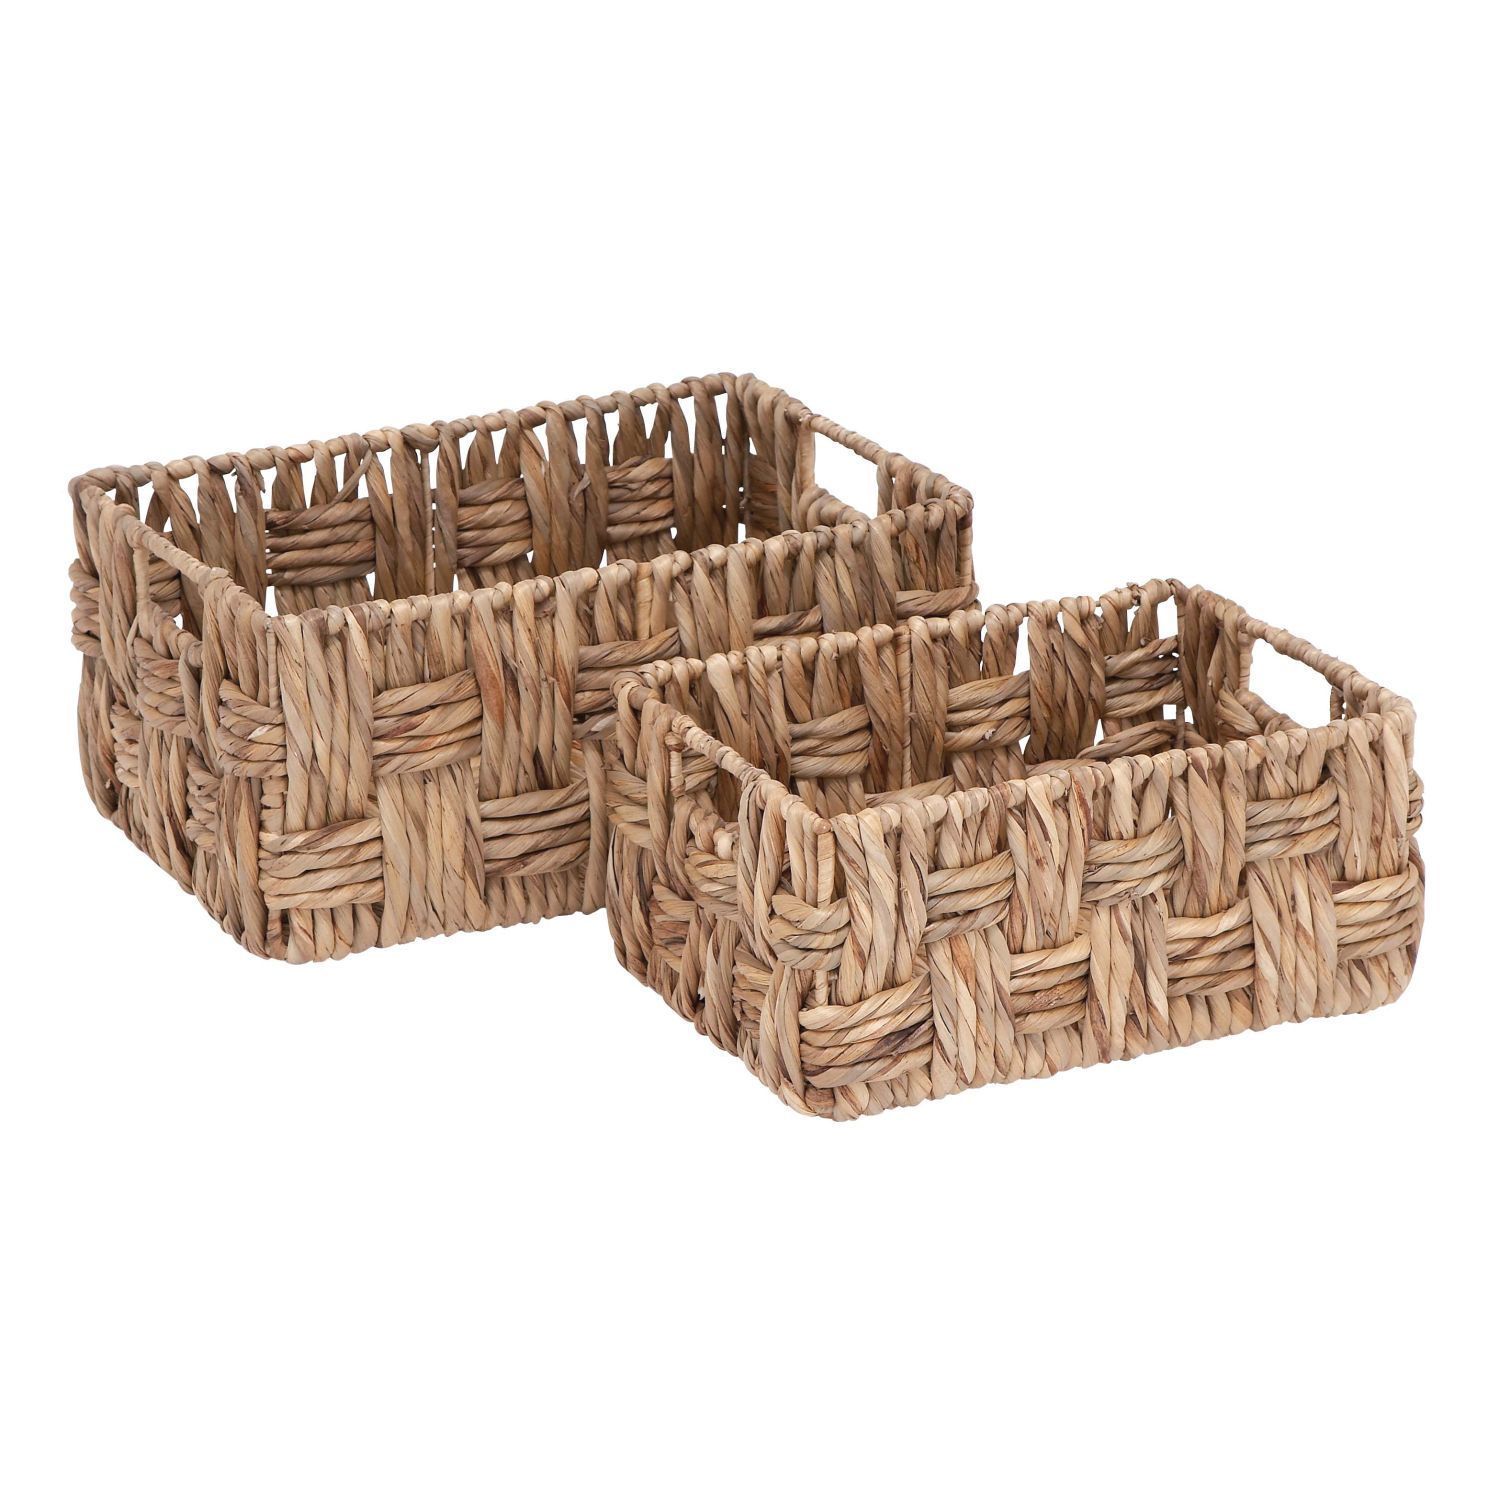 Decorative Baskets to Fit Your Home Decor   Living Spaces Display product reviews for METAL WICKER BASKETS